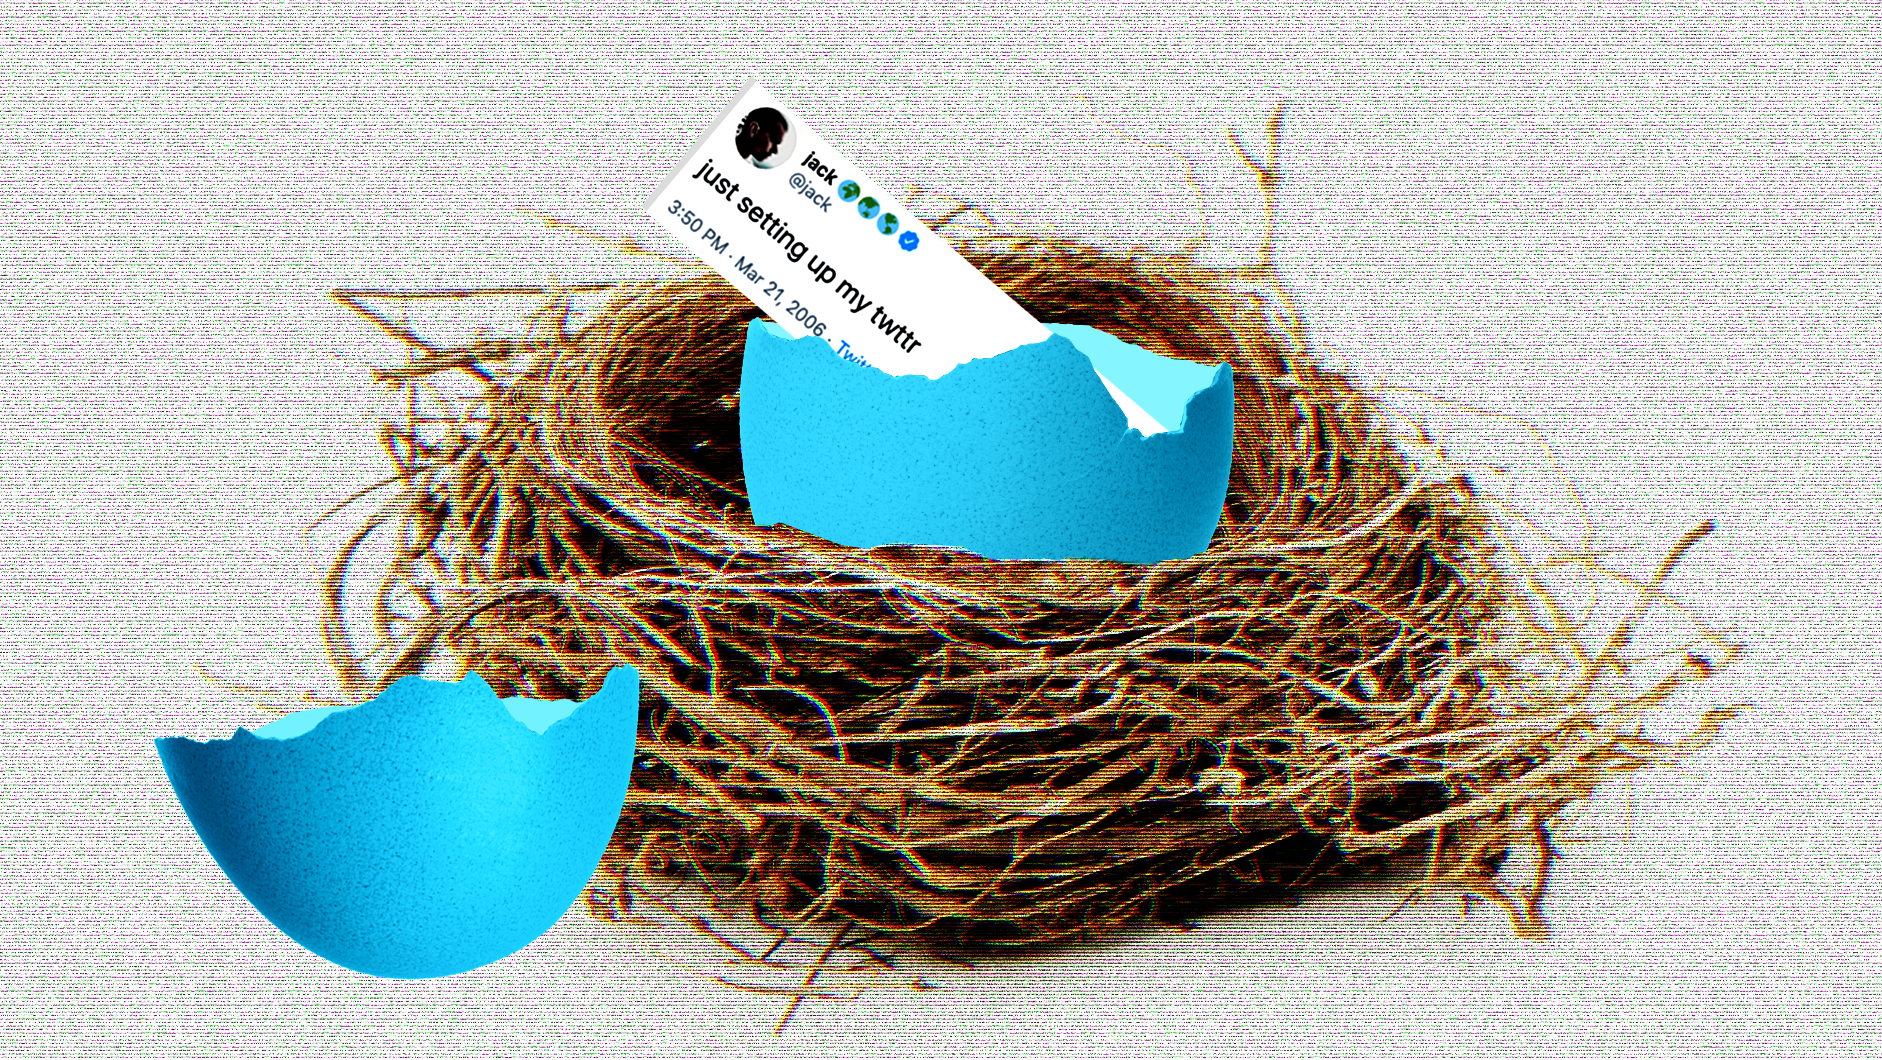 Here's What People Thought Of Twitter When It First Launched